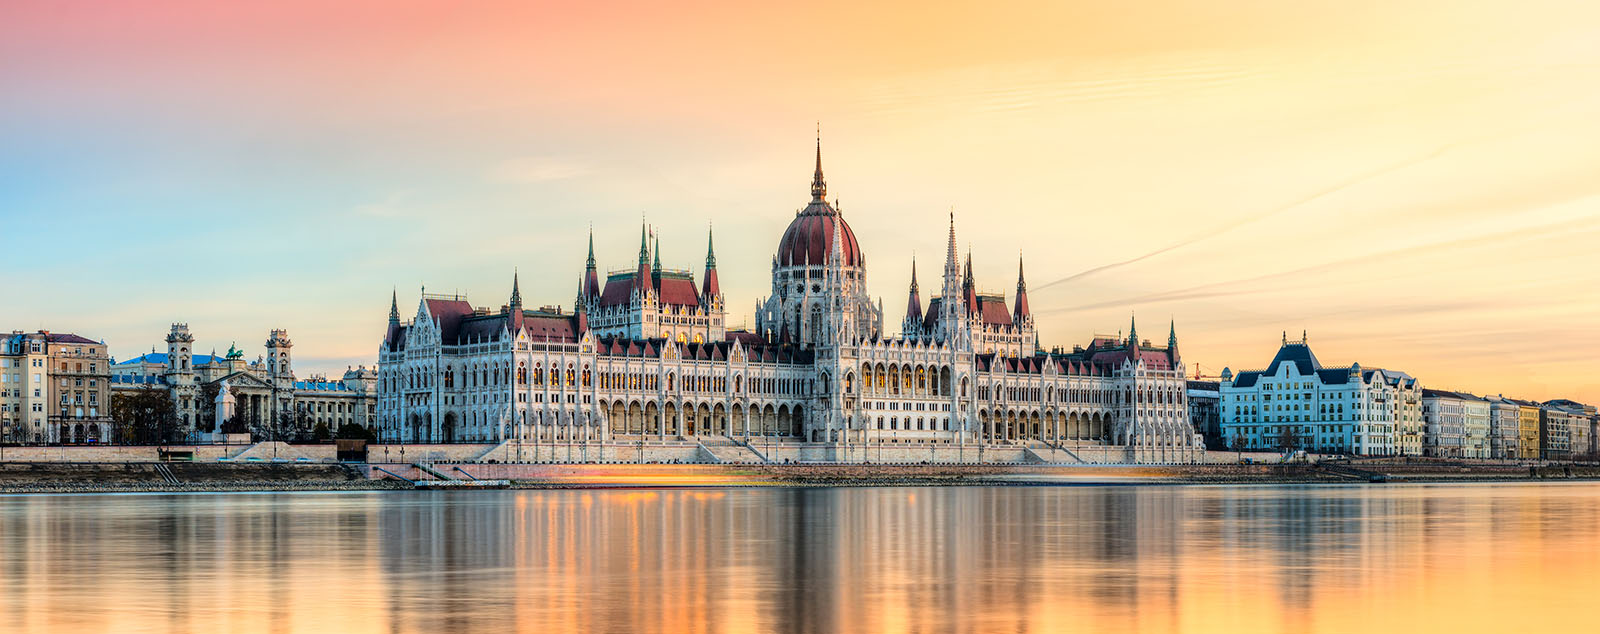 The Parliament Building viewed across the water at sunset, in an orange hue.